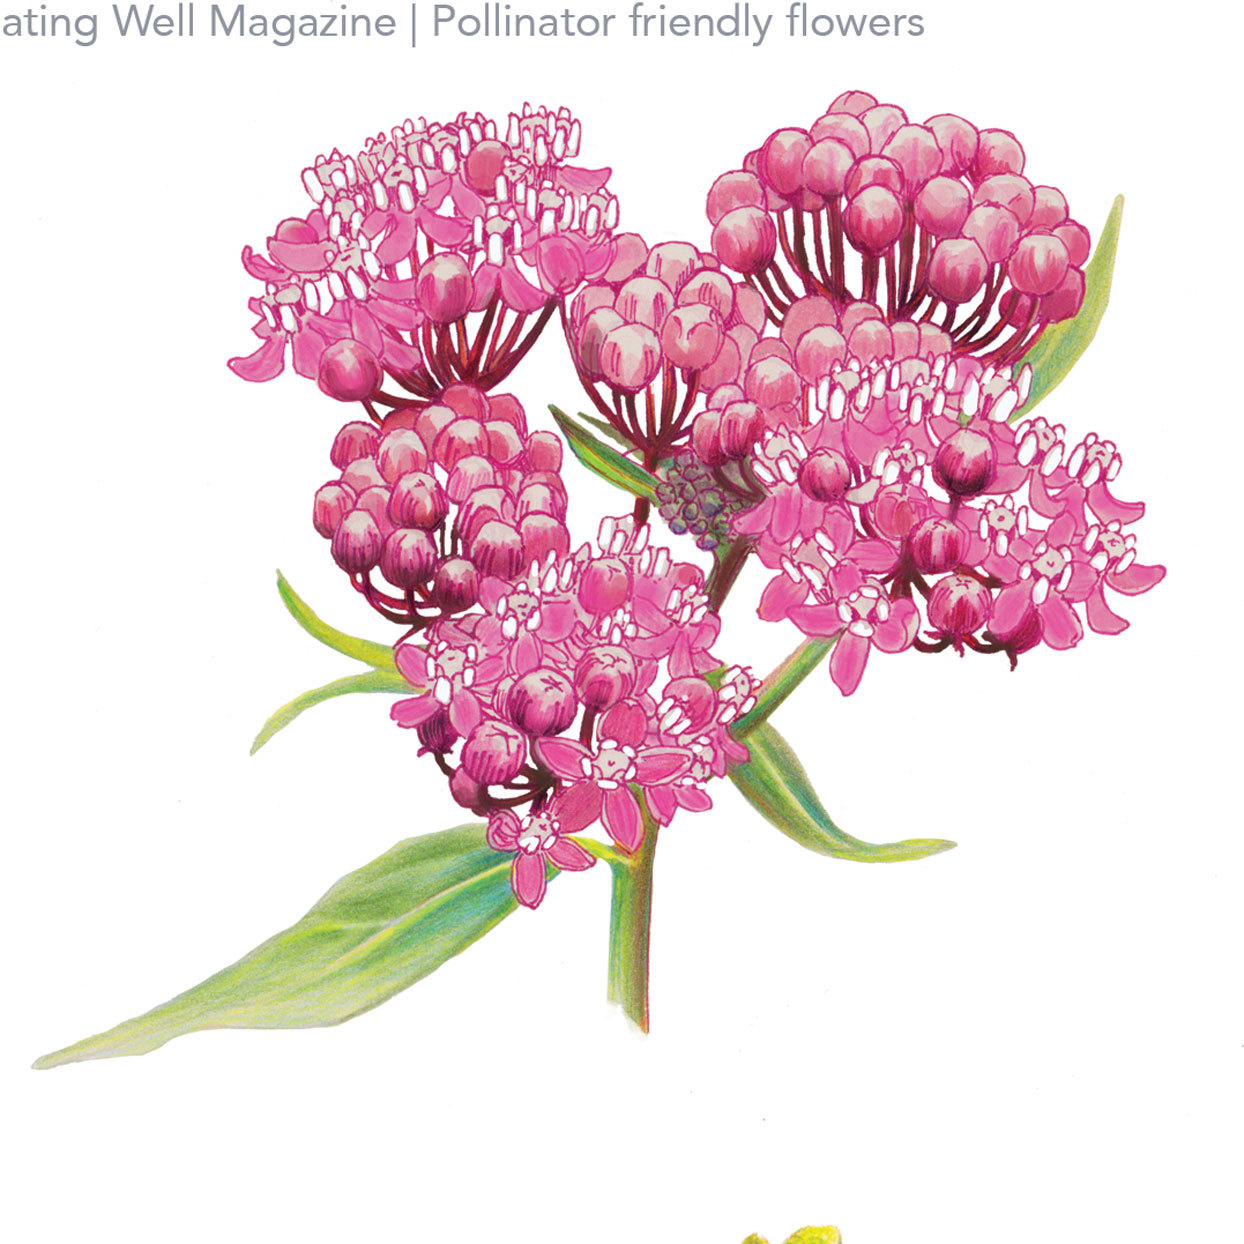 Illustration of Milkweed